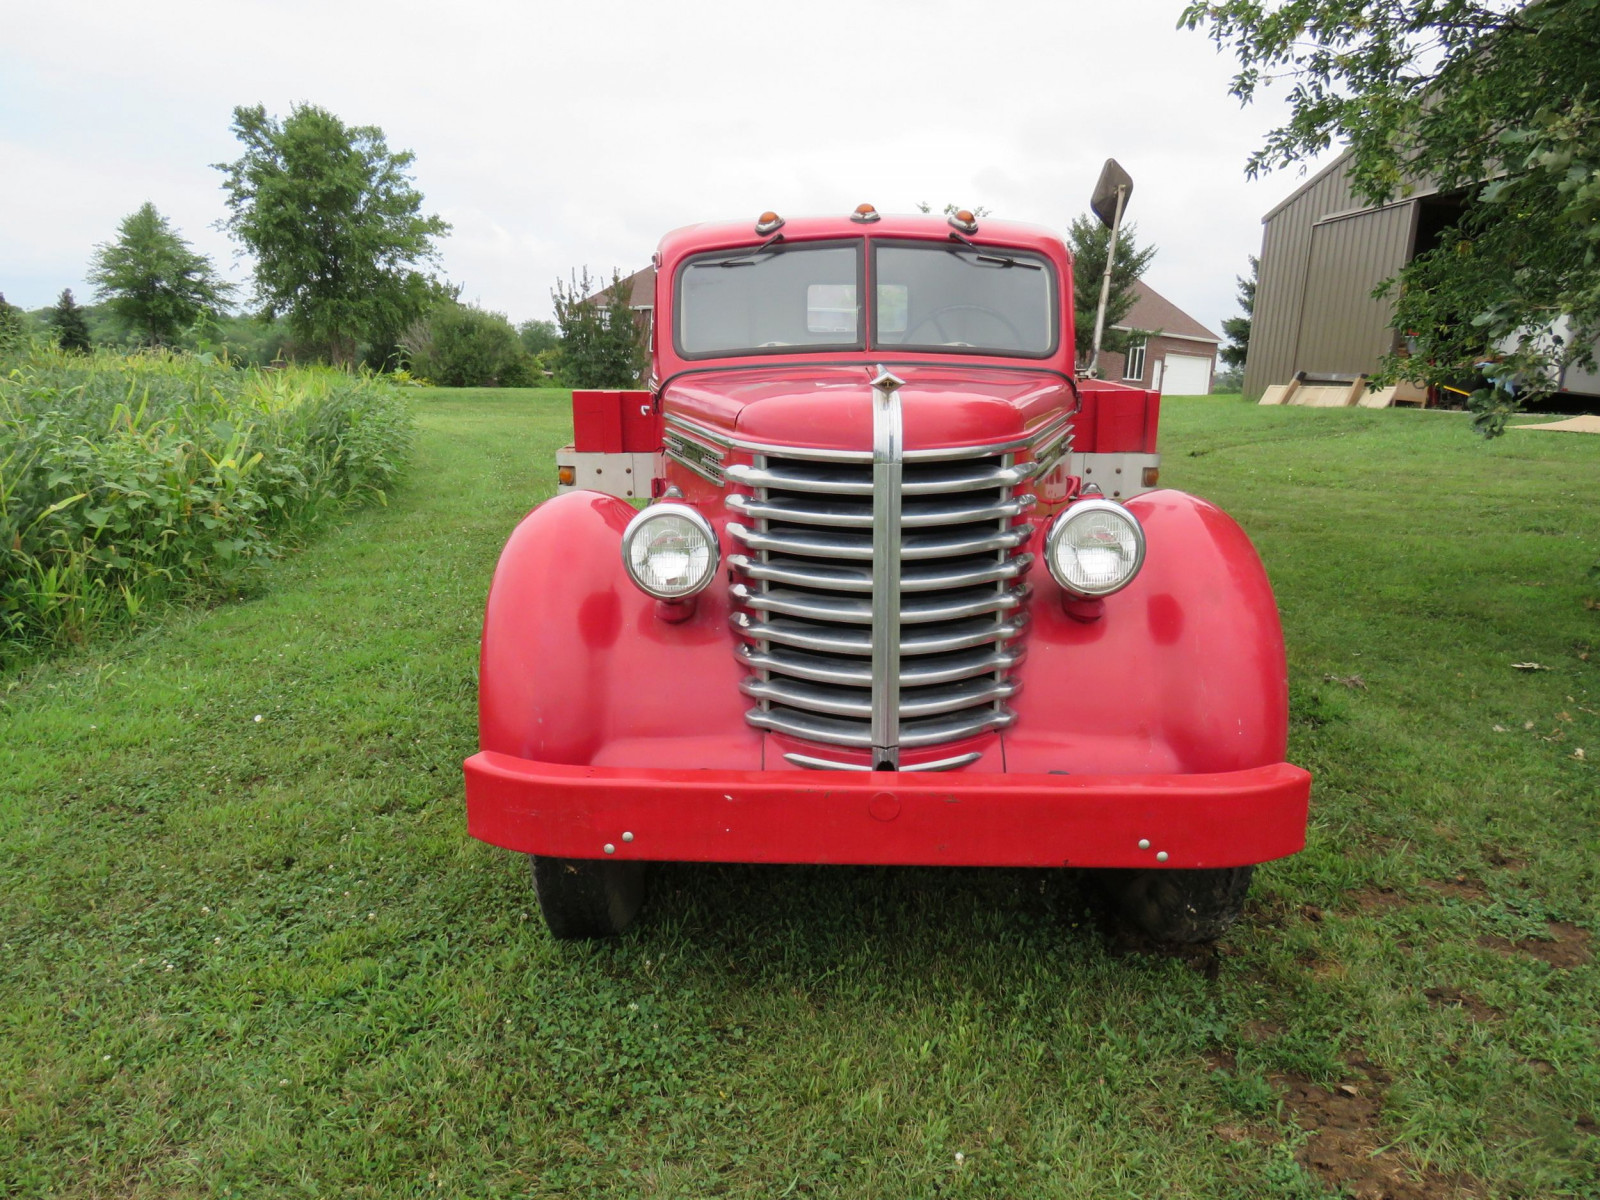 1945 Diamond T Truck - Image 2